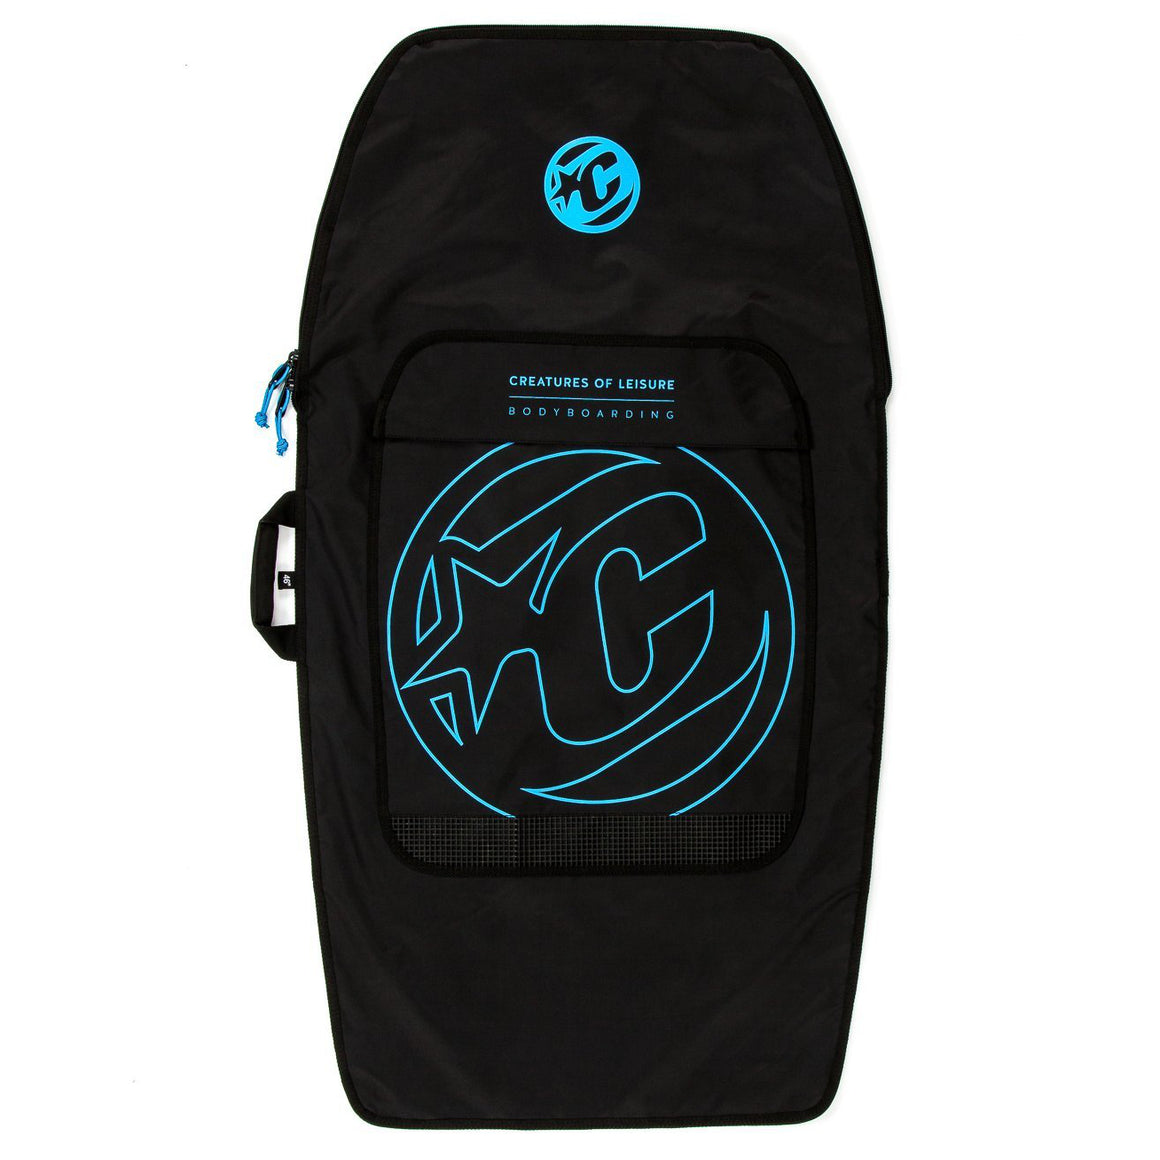 Creatures of Leisure - Bodyboard Lite (1 Brd) : Black Cyan